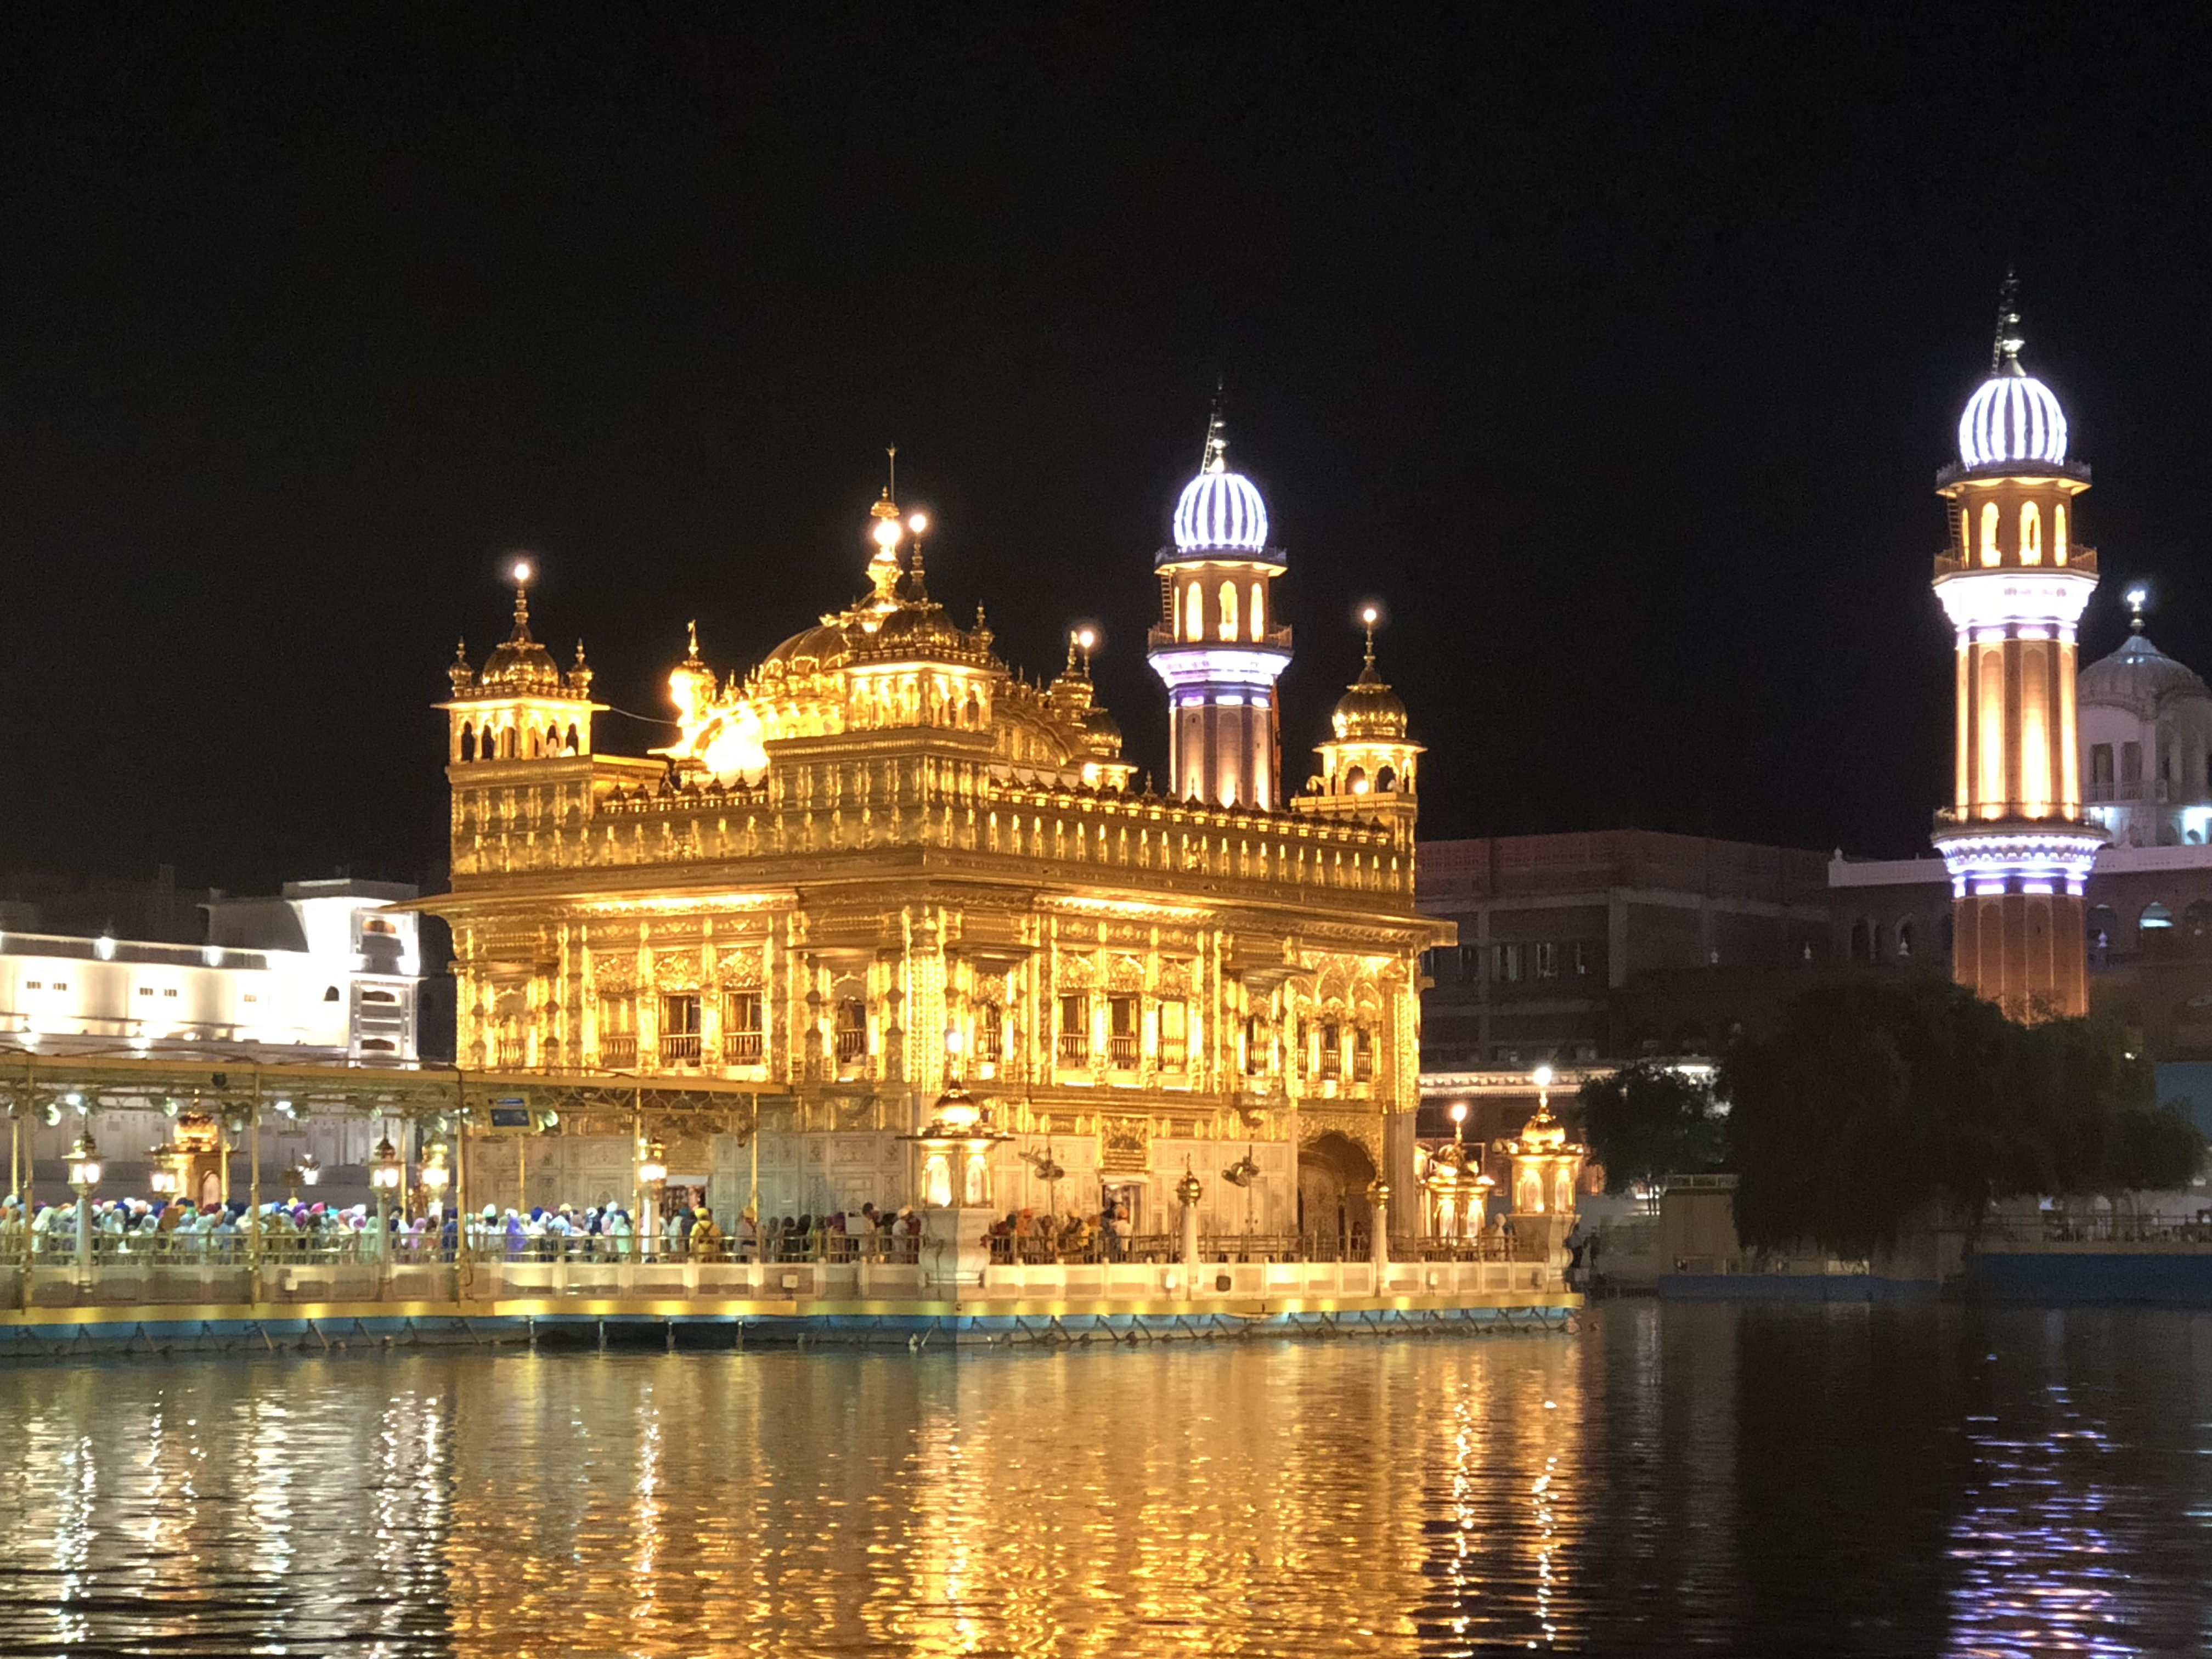 No more pictures allowed at Golden Temple